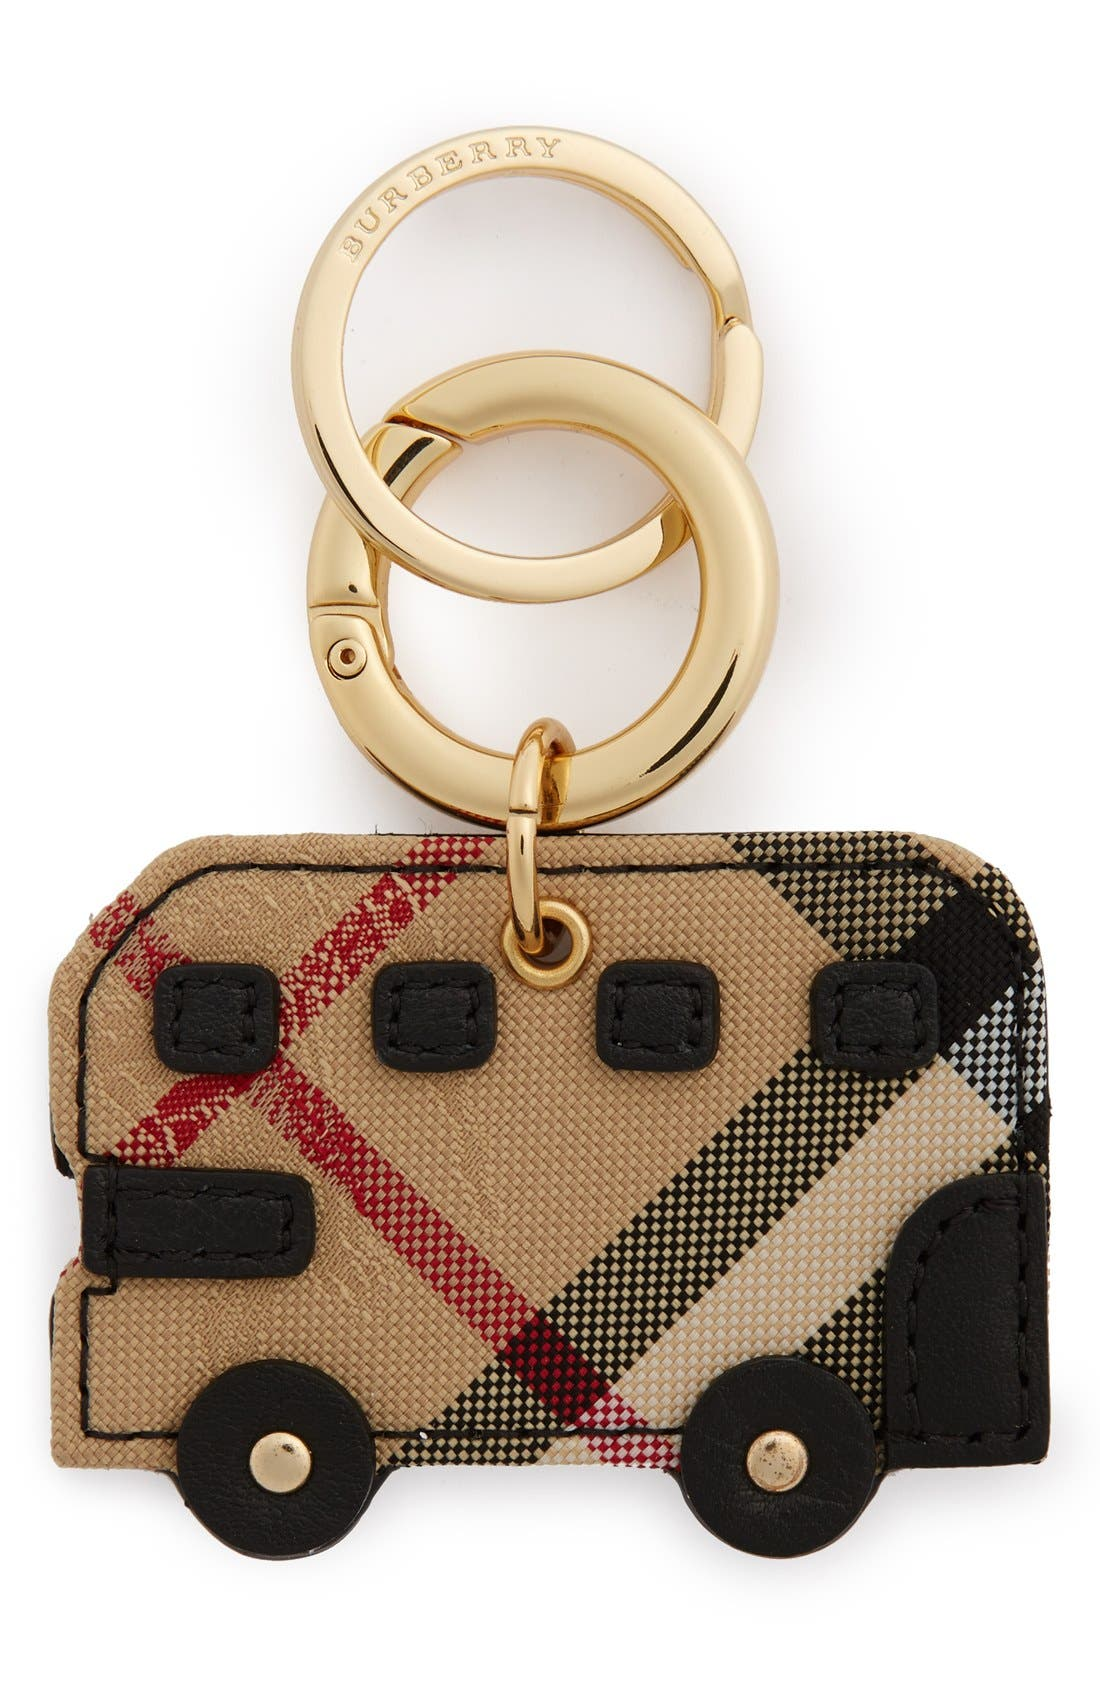 BURBERRY 'Horseferry Check' London Bus Bag Charm